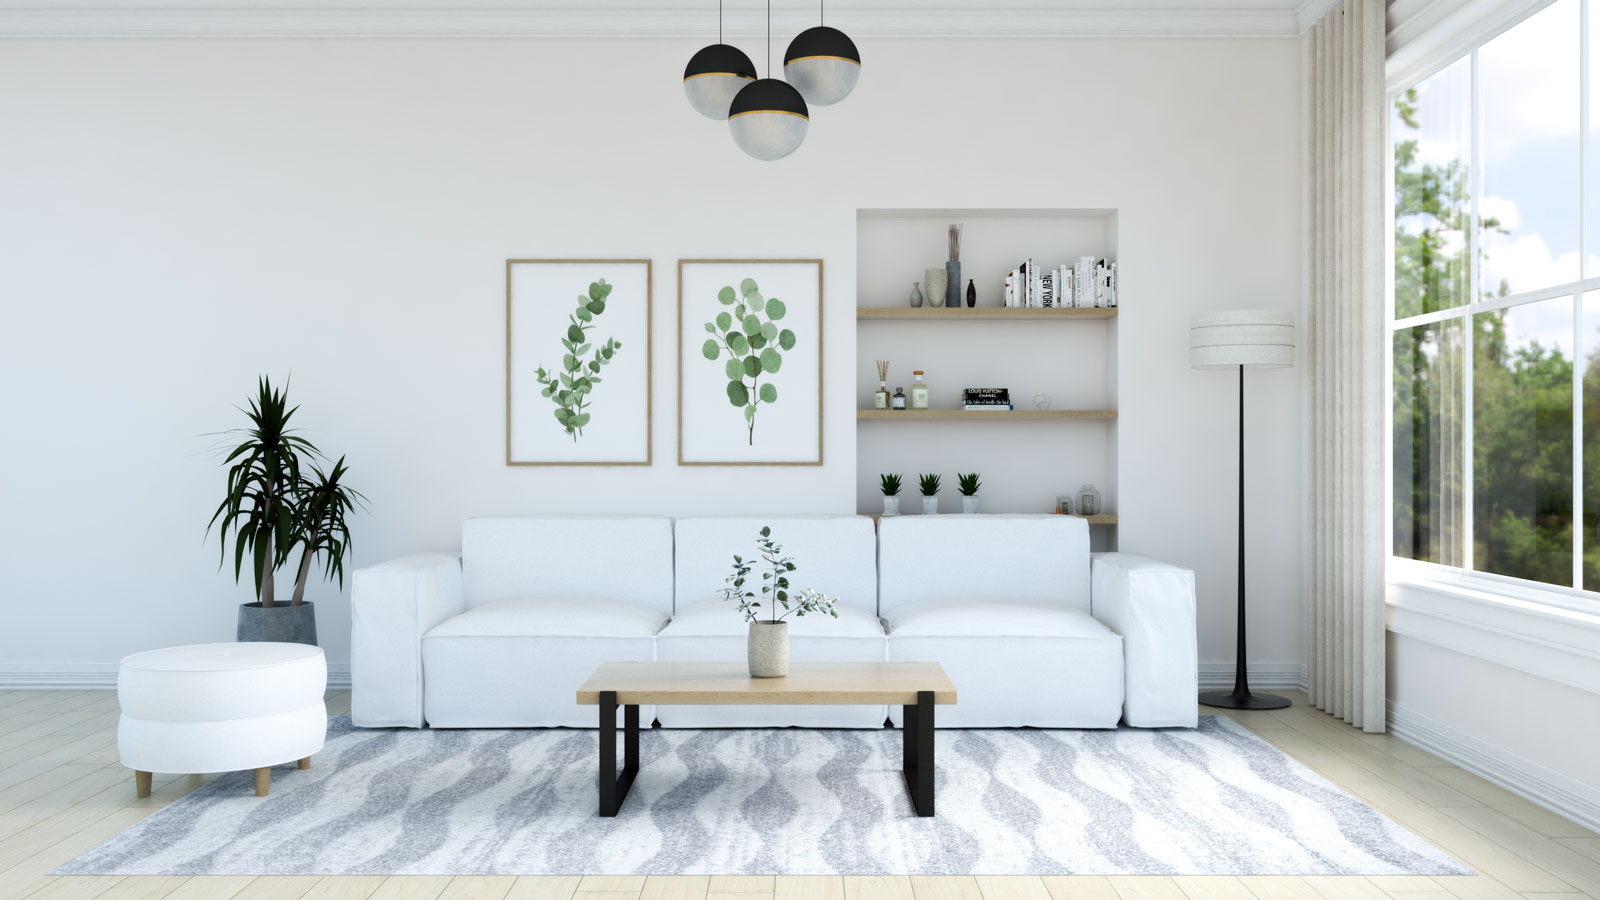 Gray and white rug with white couch